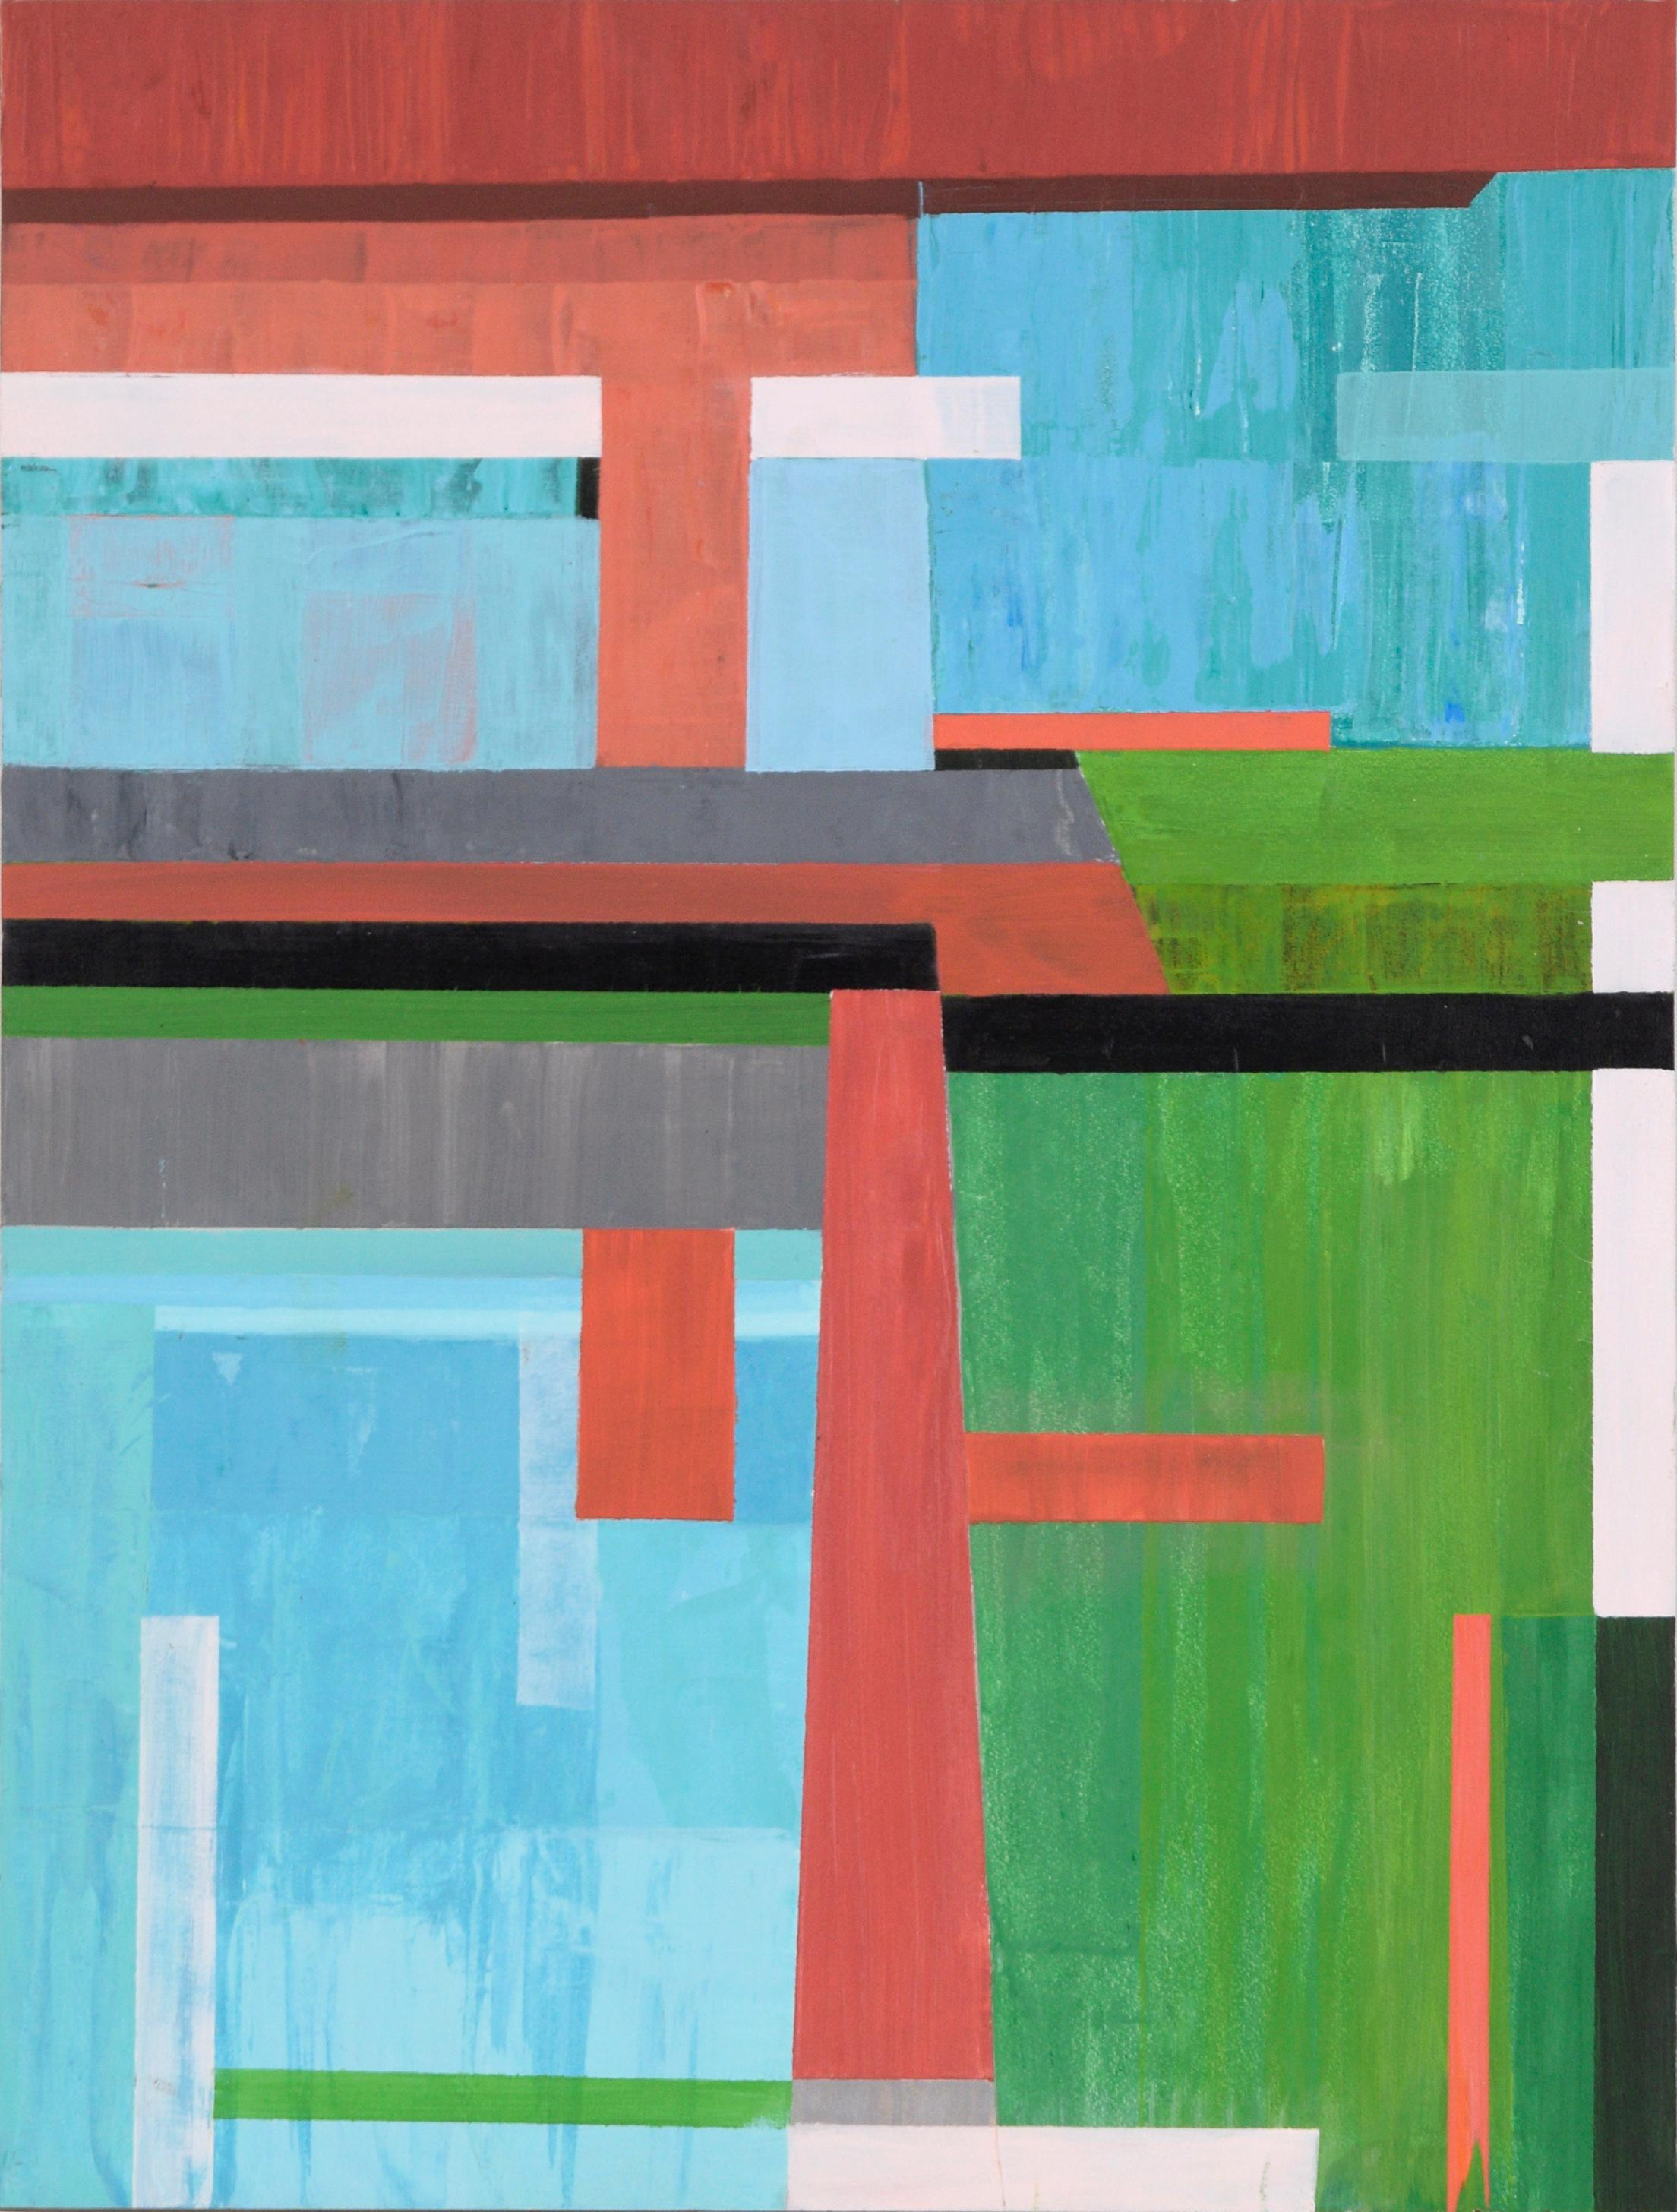 Vertical Abstract Geometric Composition